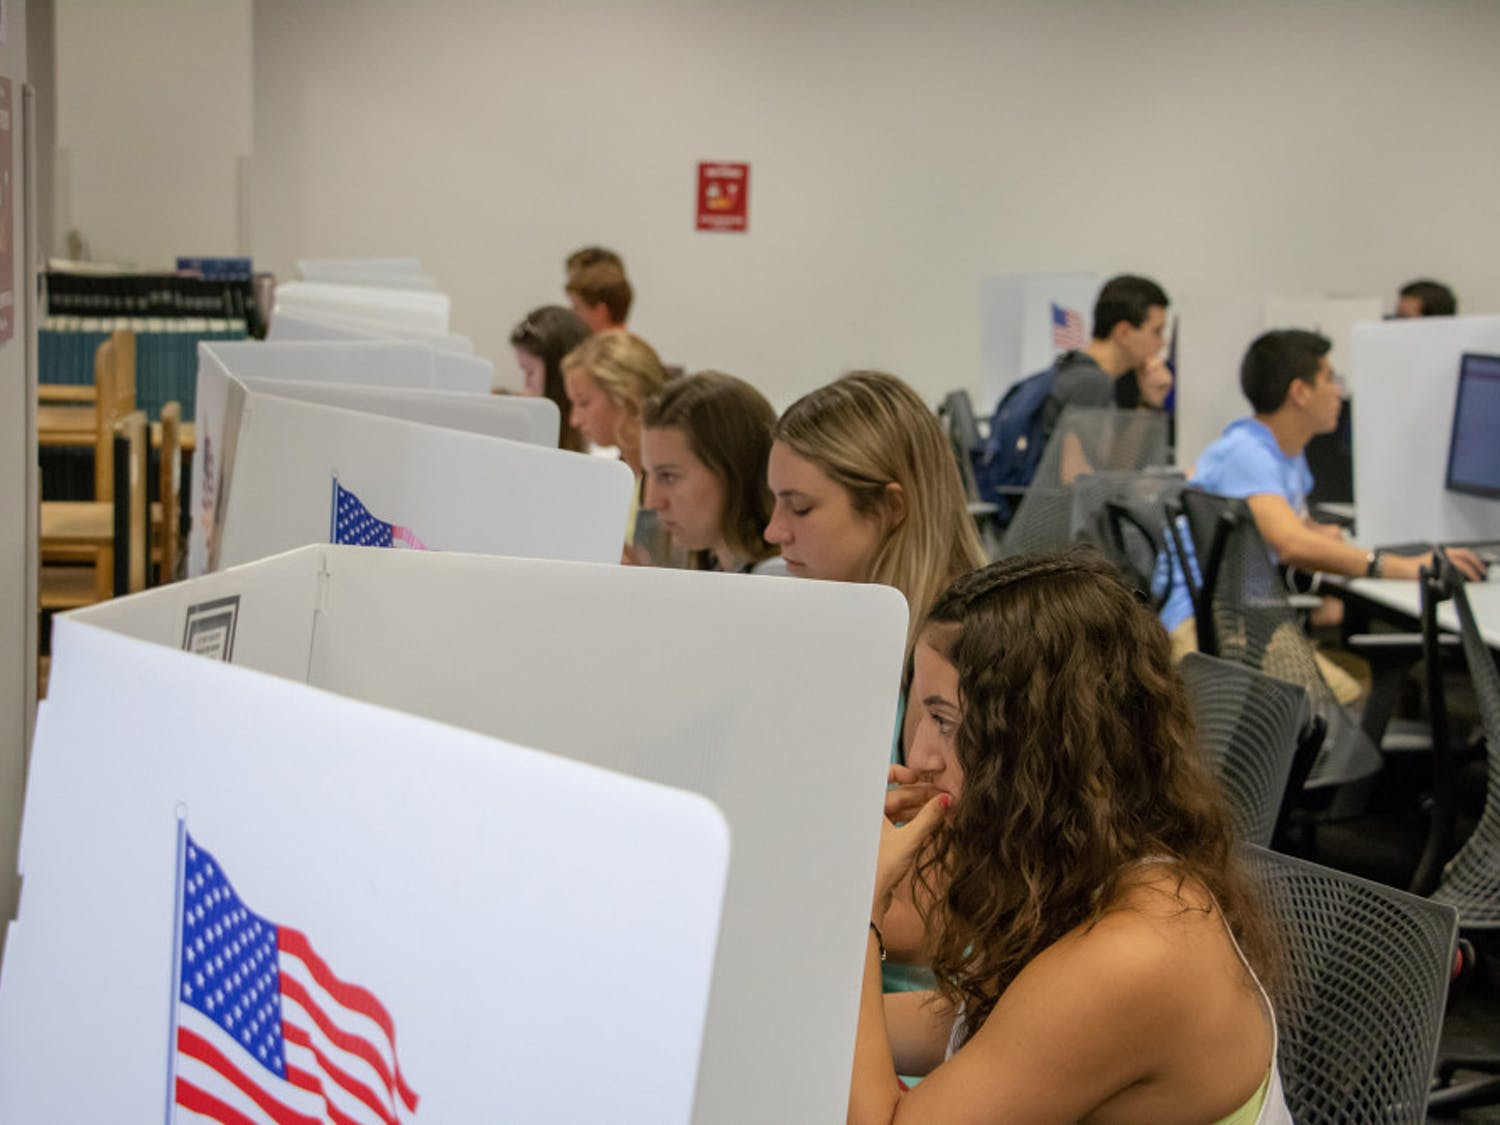 Students sit at voting stations at the Marston Science Library computer lab polling location and cast their votes for last Fall's StudentGovernment elections on Sept. 25. Marston is one of several locations students can vote at on Wednesday.